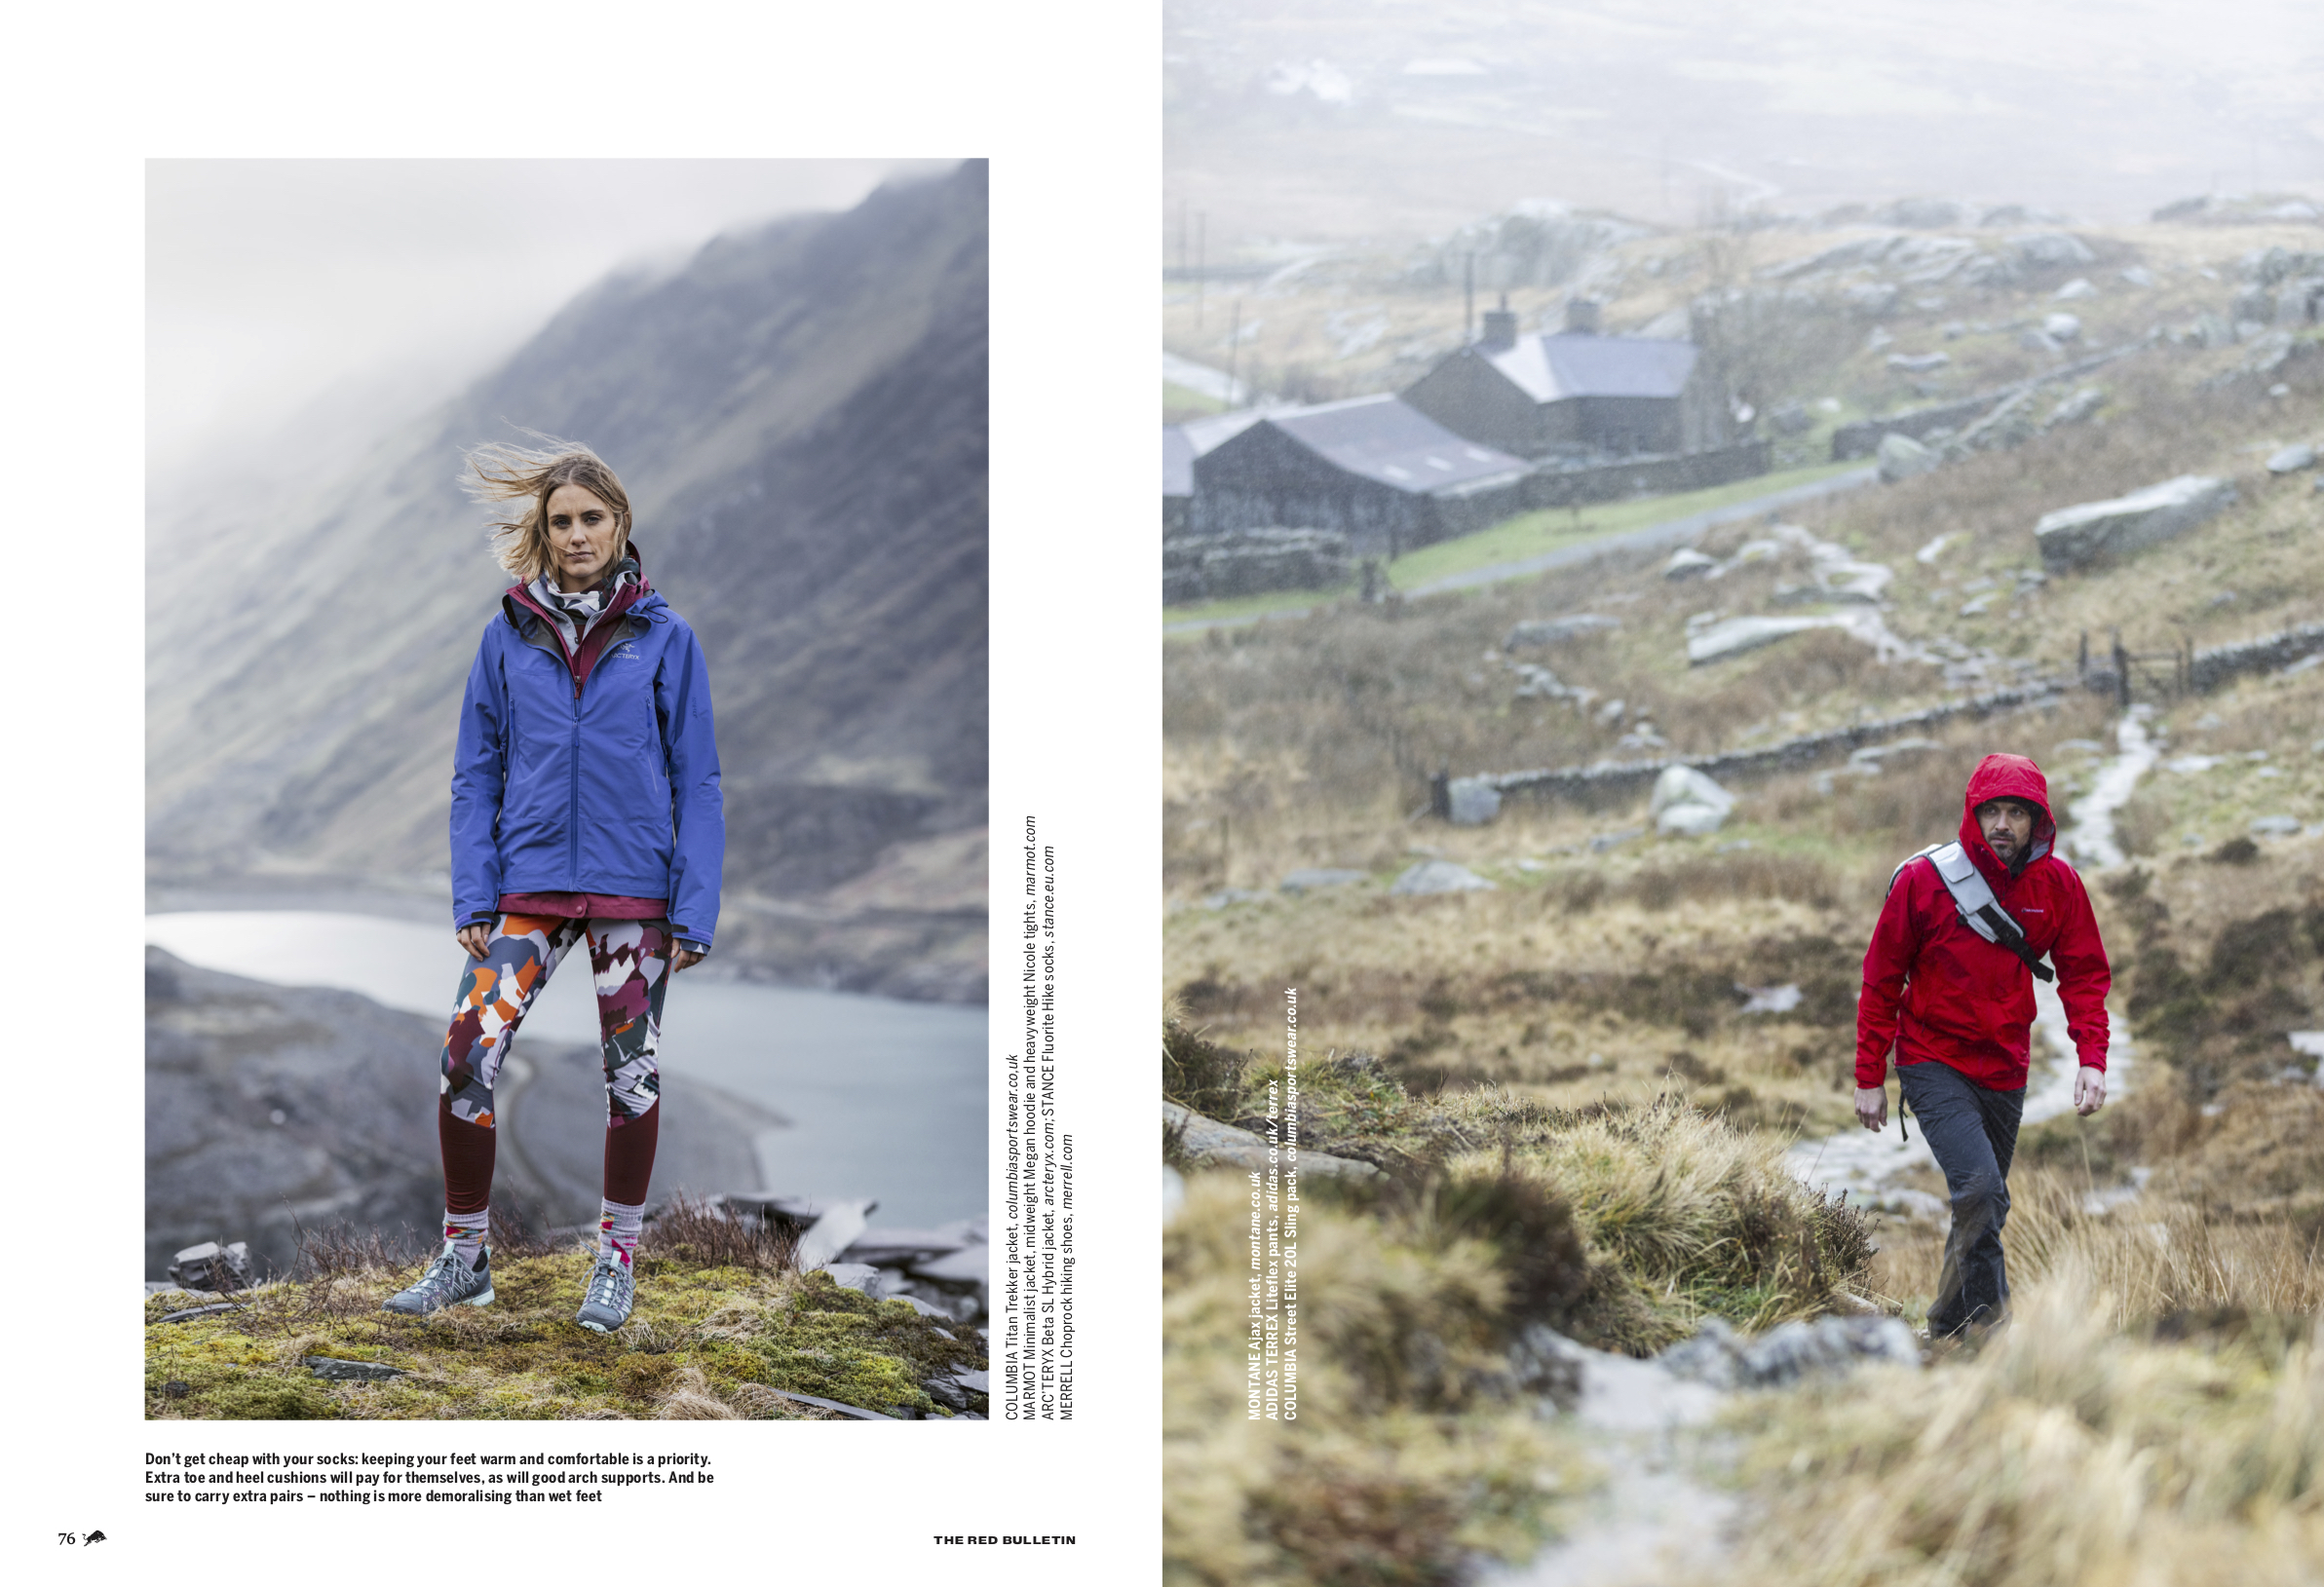 TheRedBulletin0519Feature-UK_OutdoorClothing p80-3.jpg